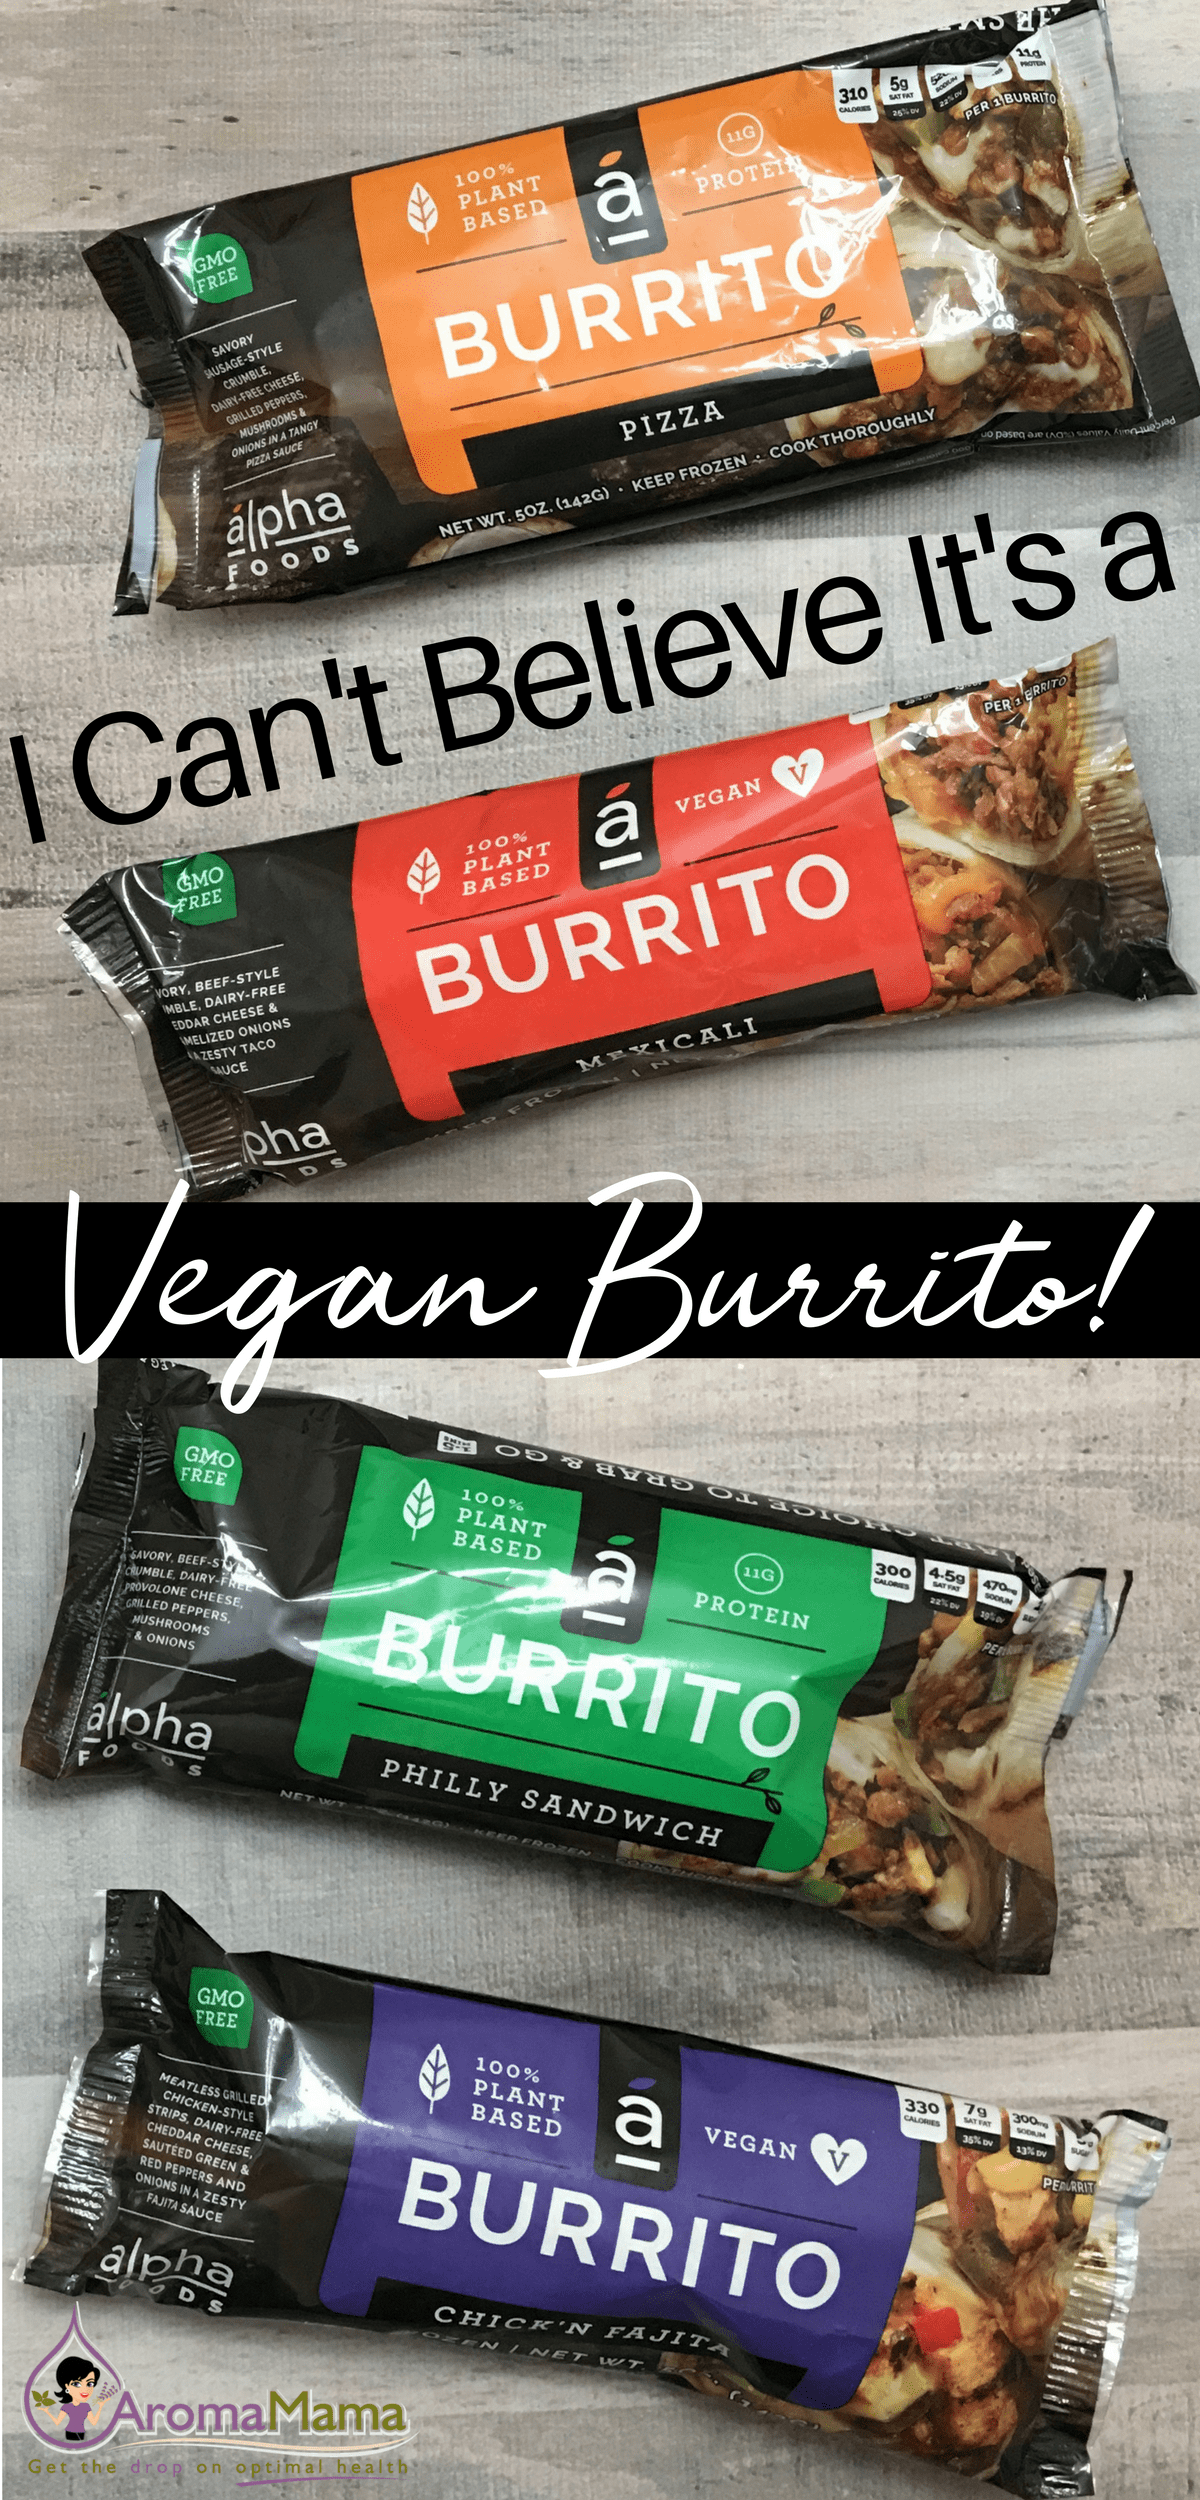 The new frozen vegan burrito by Alpha Foods that's changing people's mind about how delicious a frozen vegan burrito can be! #sponsored #AlphaFoods #AlphaBurritos #momsmeet #vegan